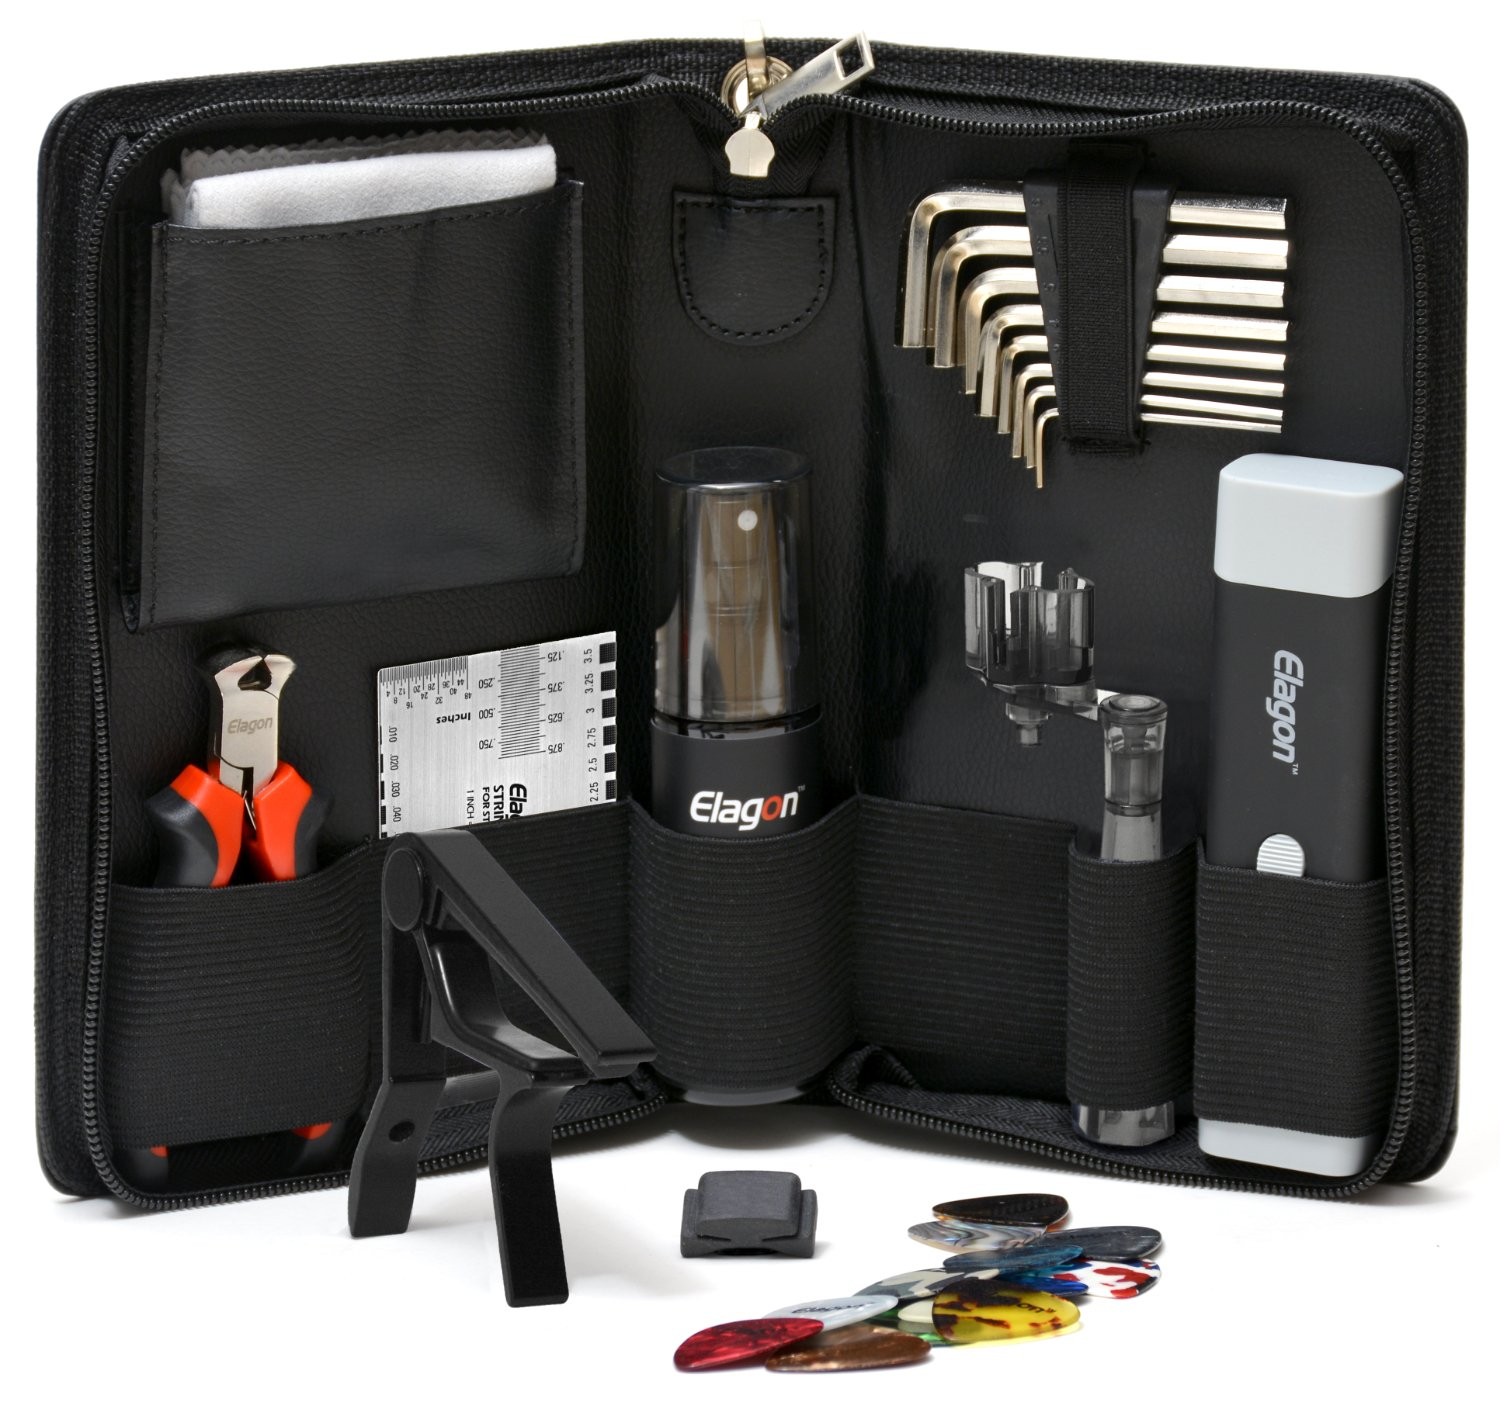 Elagon (STC+5) Pro Care Kit - Top Quality Guitar Cleaning and Maintenance Kit Containing all the Essential Guitar Tools to Keep Your Guitar Clean and Properly Set Up For Best Playing Smoothness and Speed! The Perfect Kit in a Practical Pouch for Use at Hom